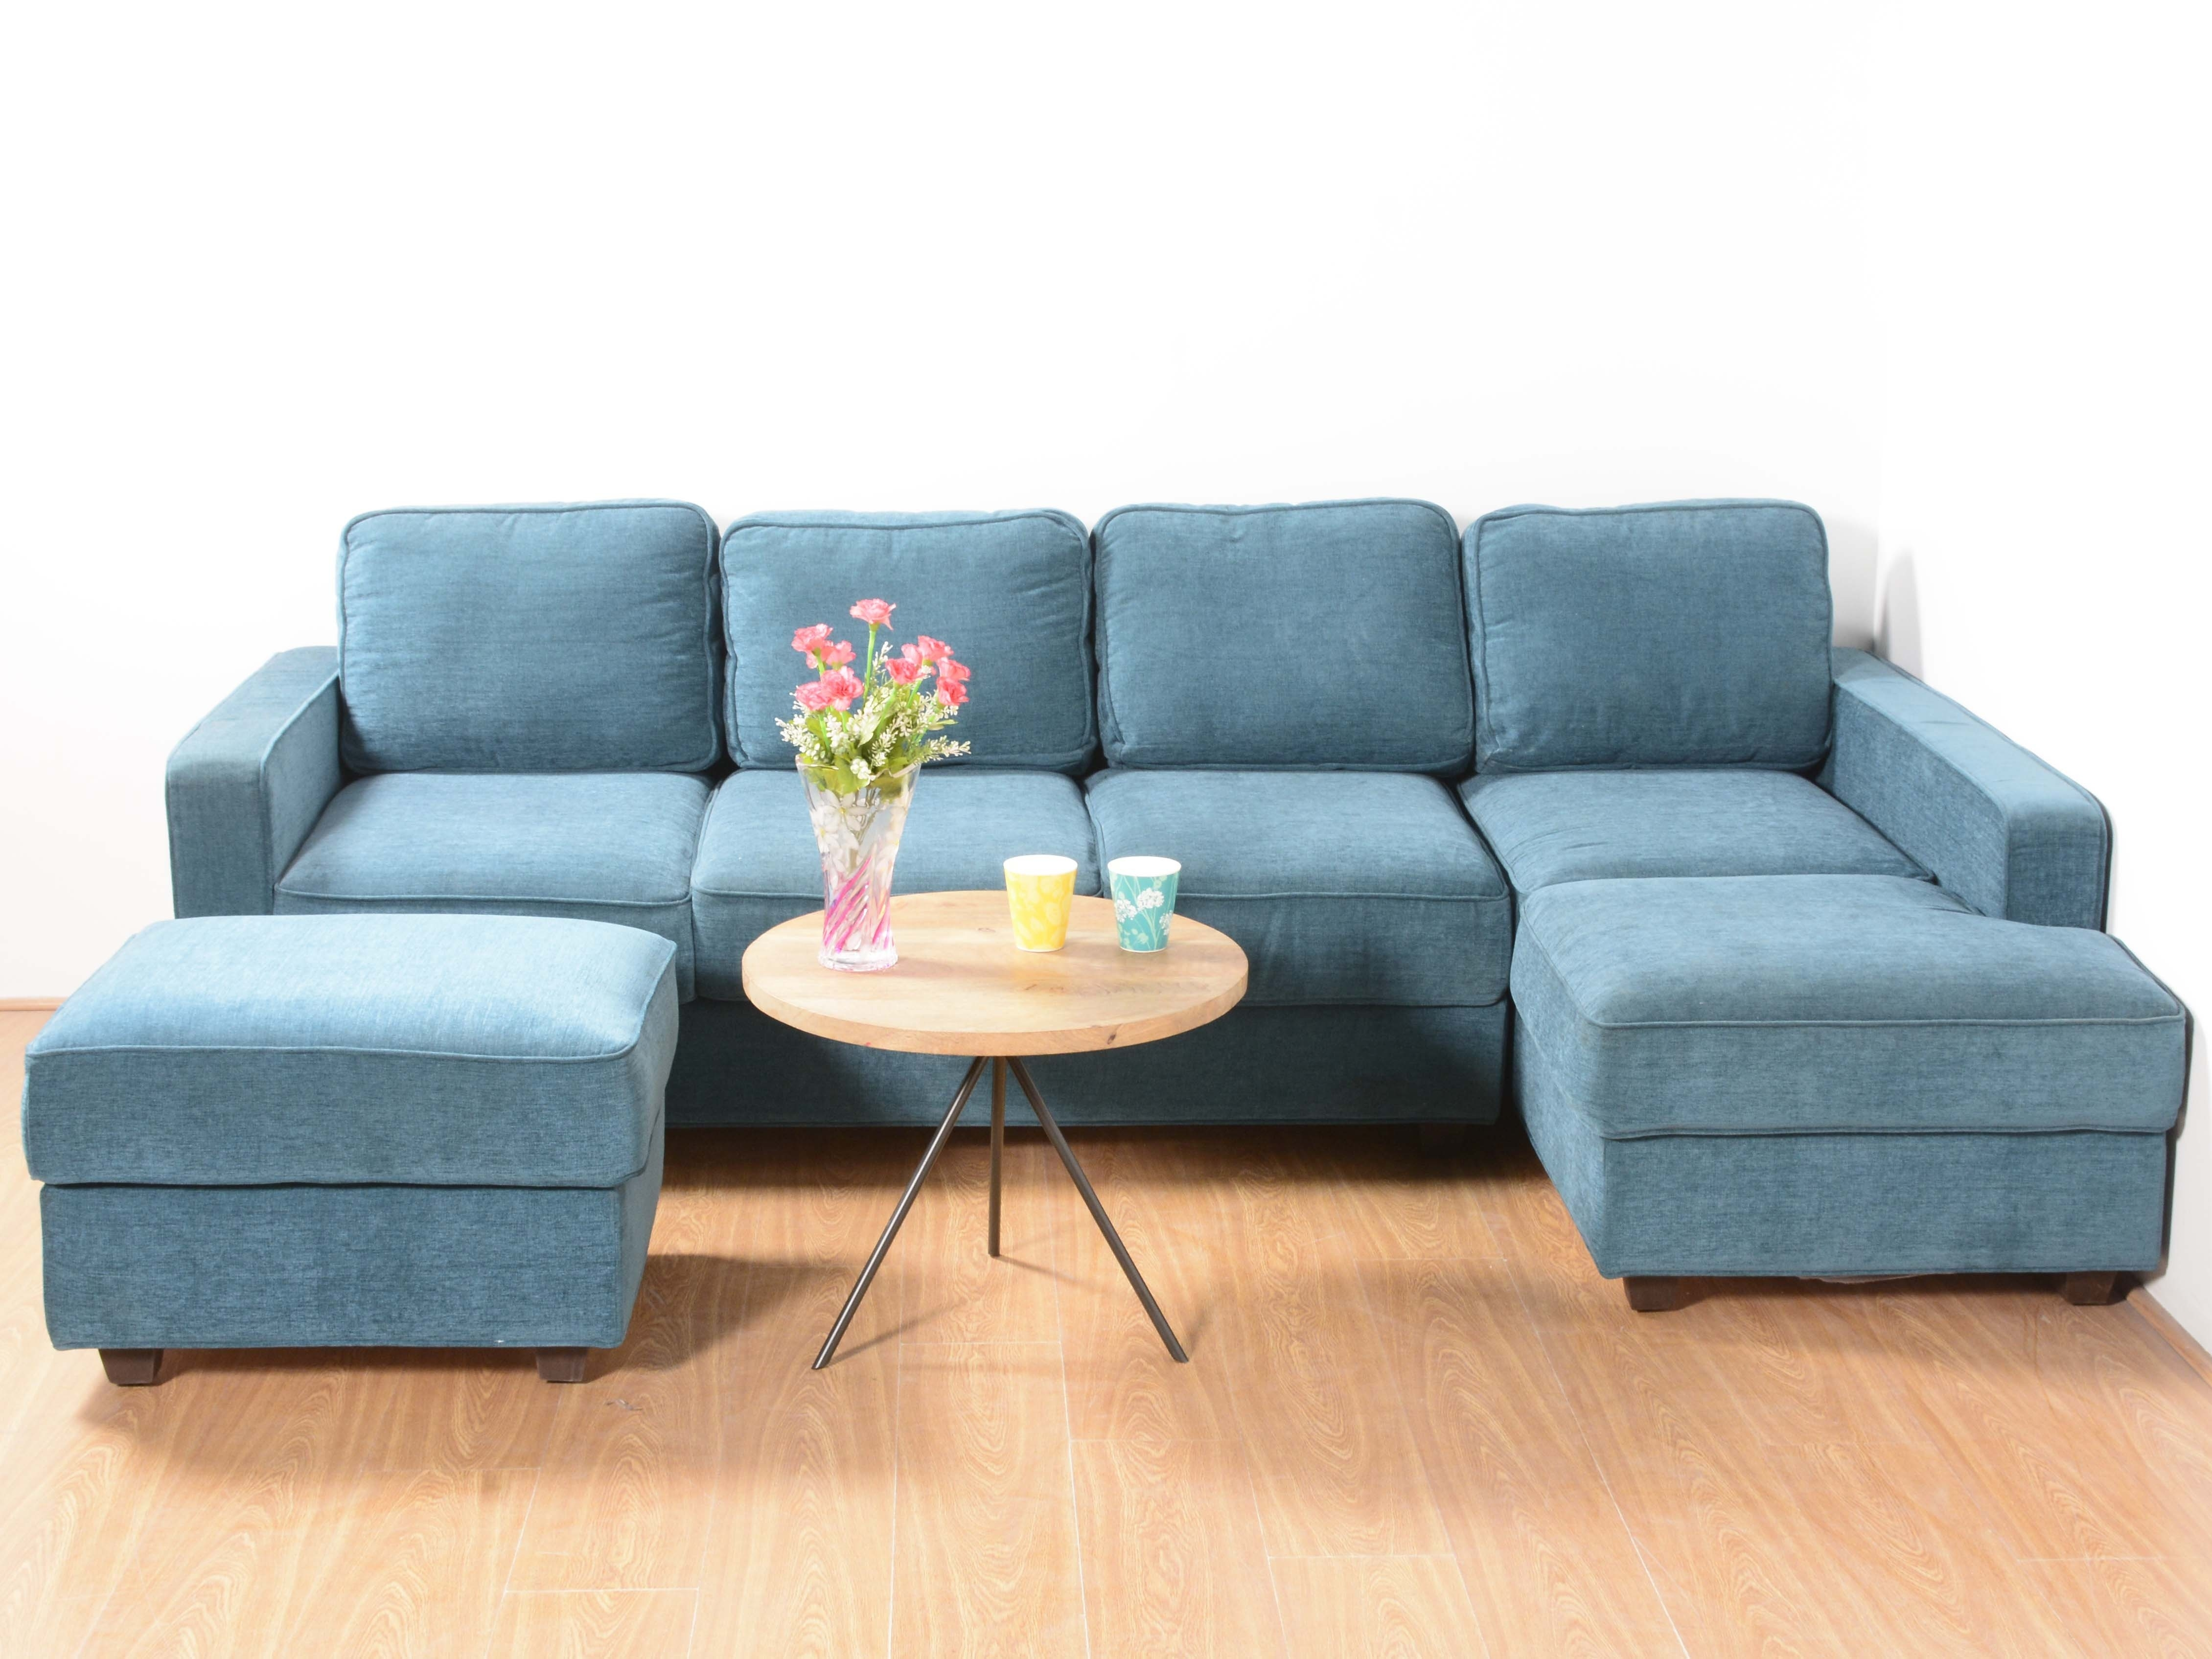 Apollo L-Shape Sectional Sofa With Ottomanurban Ladder: Buy And regarding Sectional Sofas At Bangalore (Image 1 of 15)